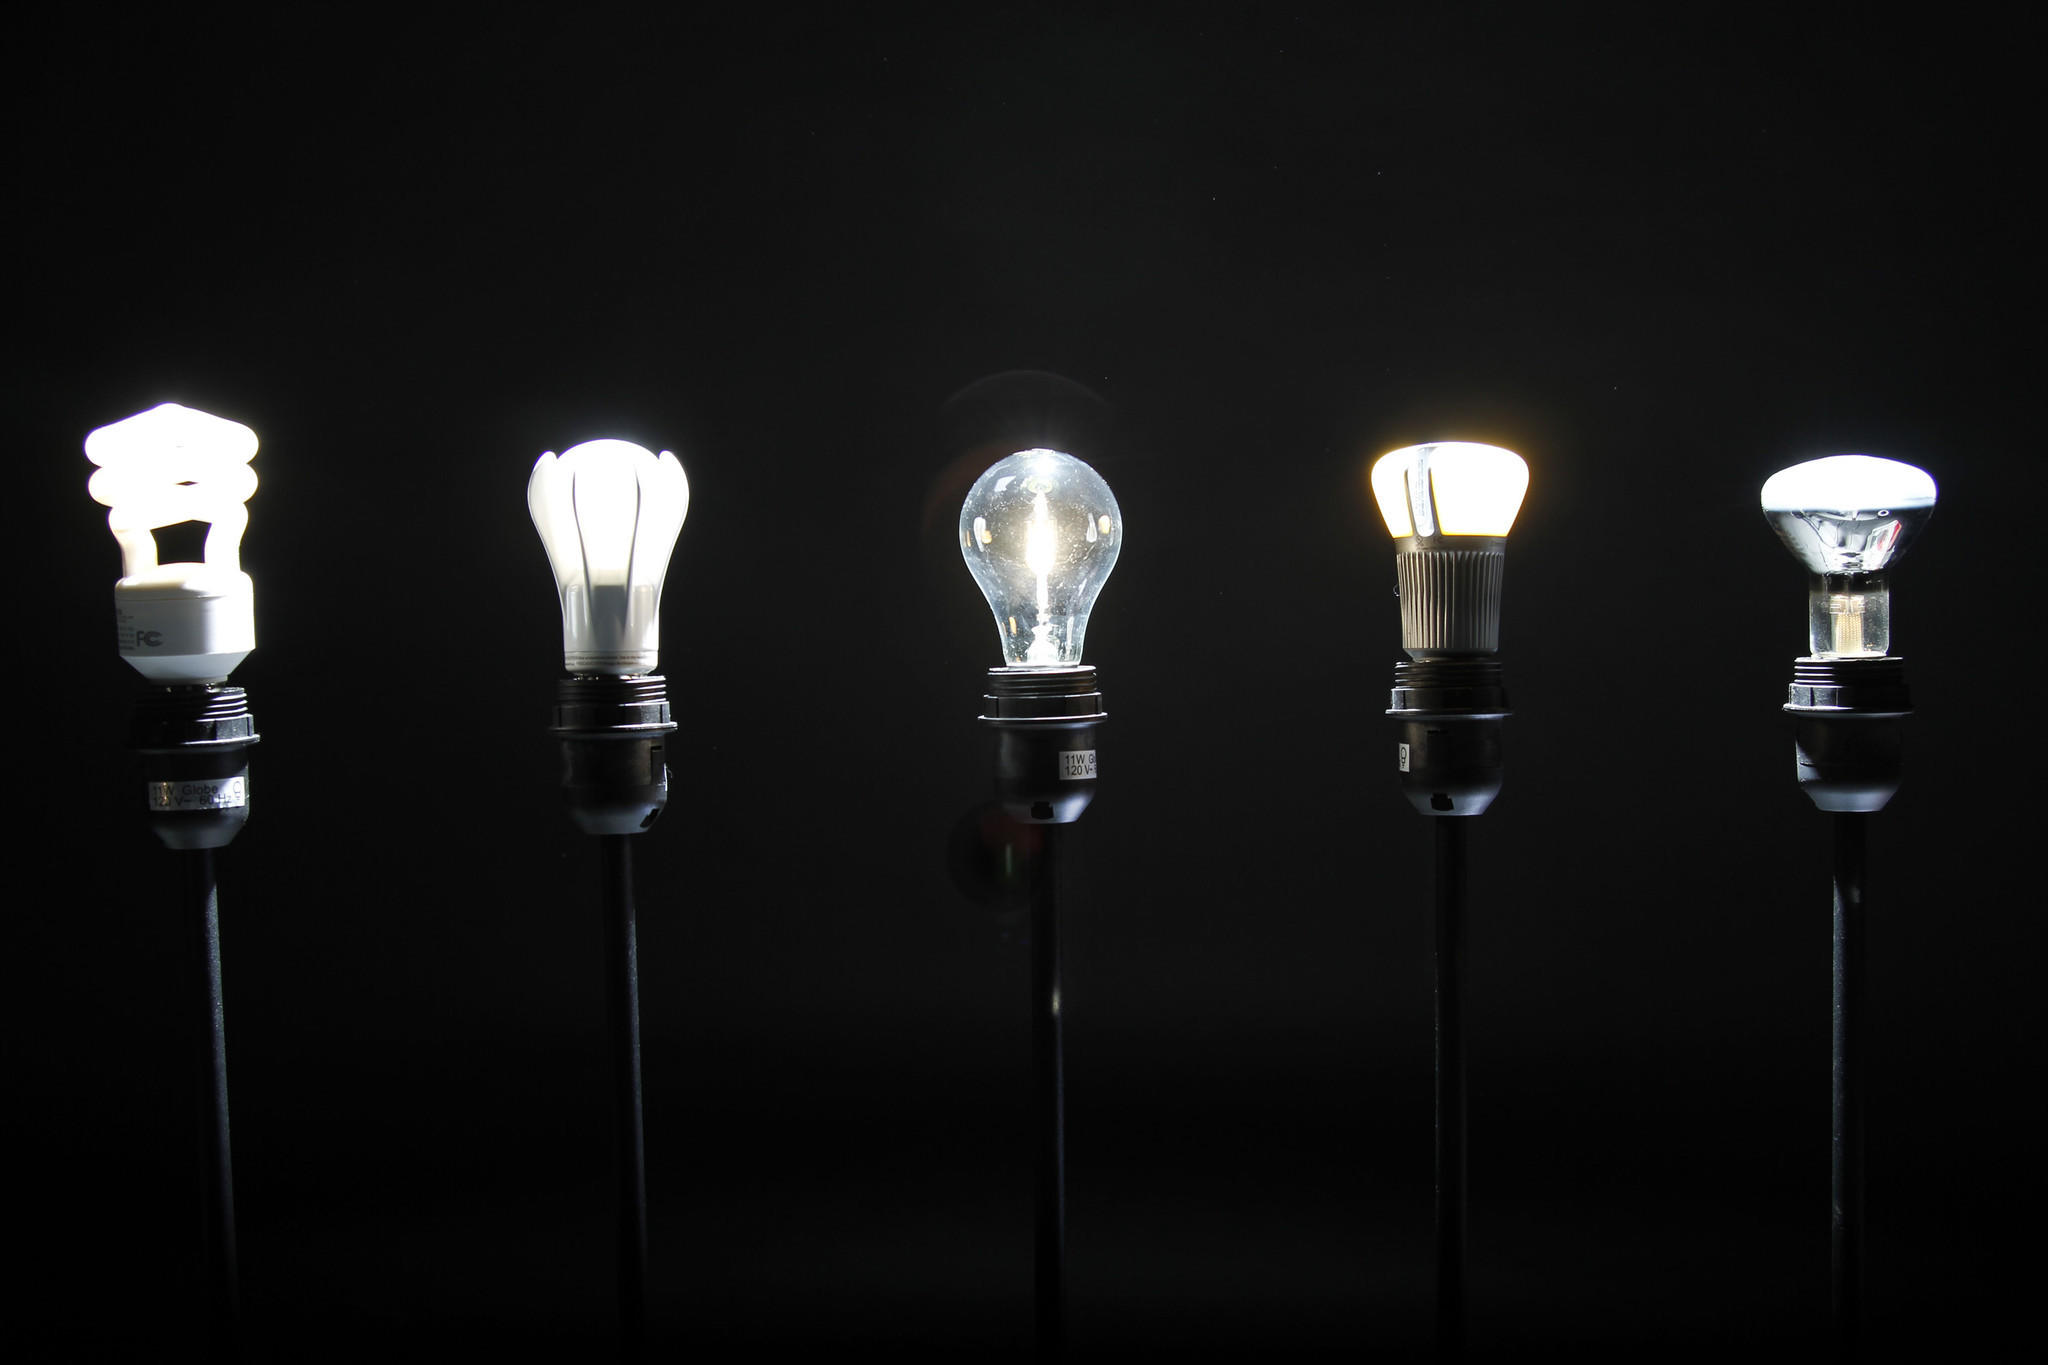 Different types of light bulbs including incandescent fluorescent halogen and led